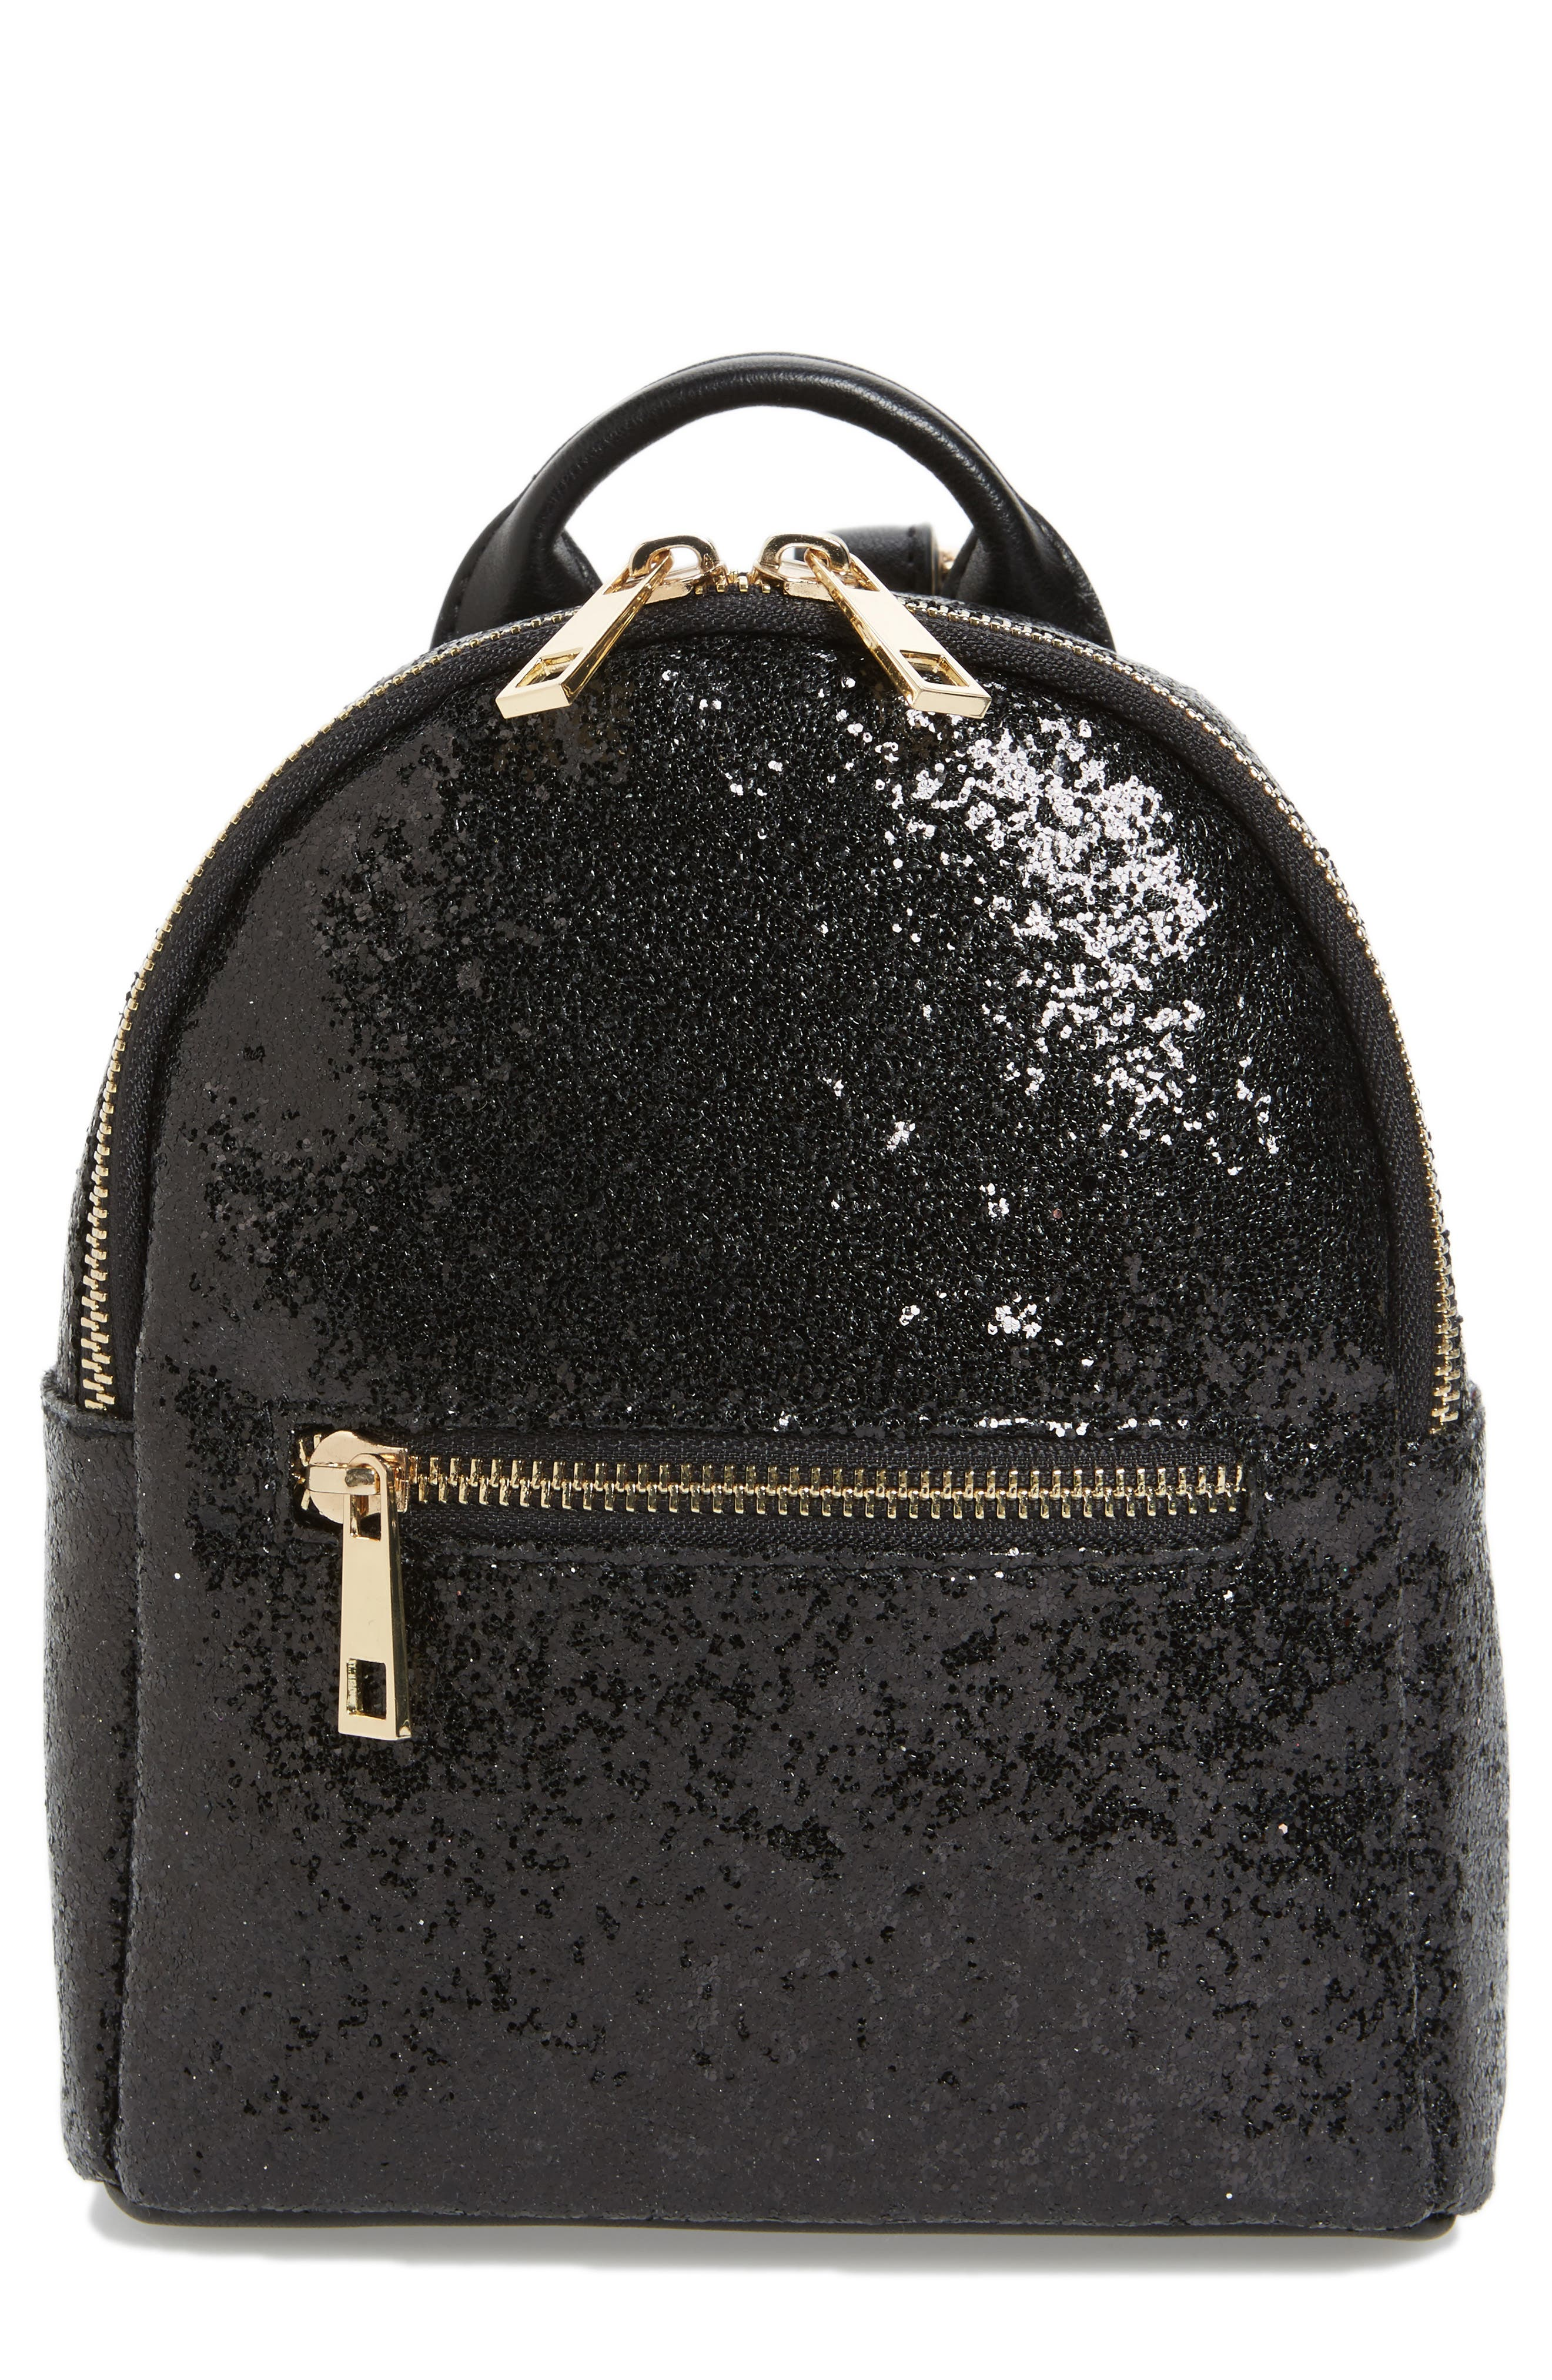 Alternate Image 1 Selected - Mali + Lili Glitter Faux Leather Backpack